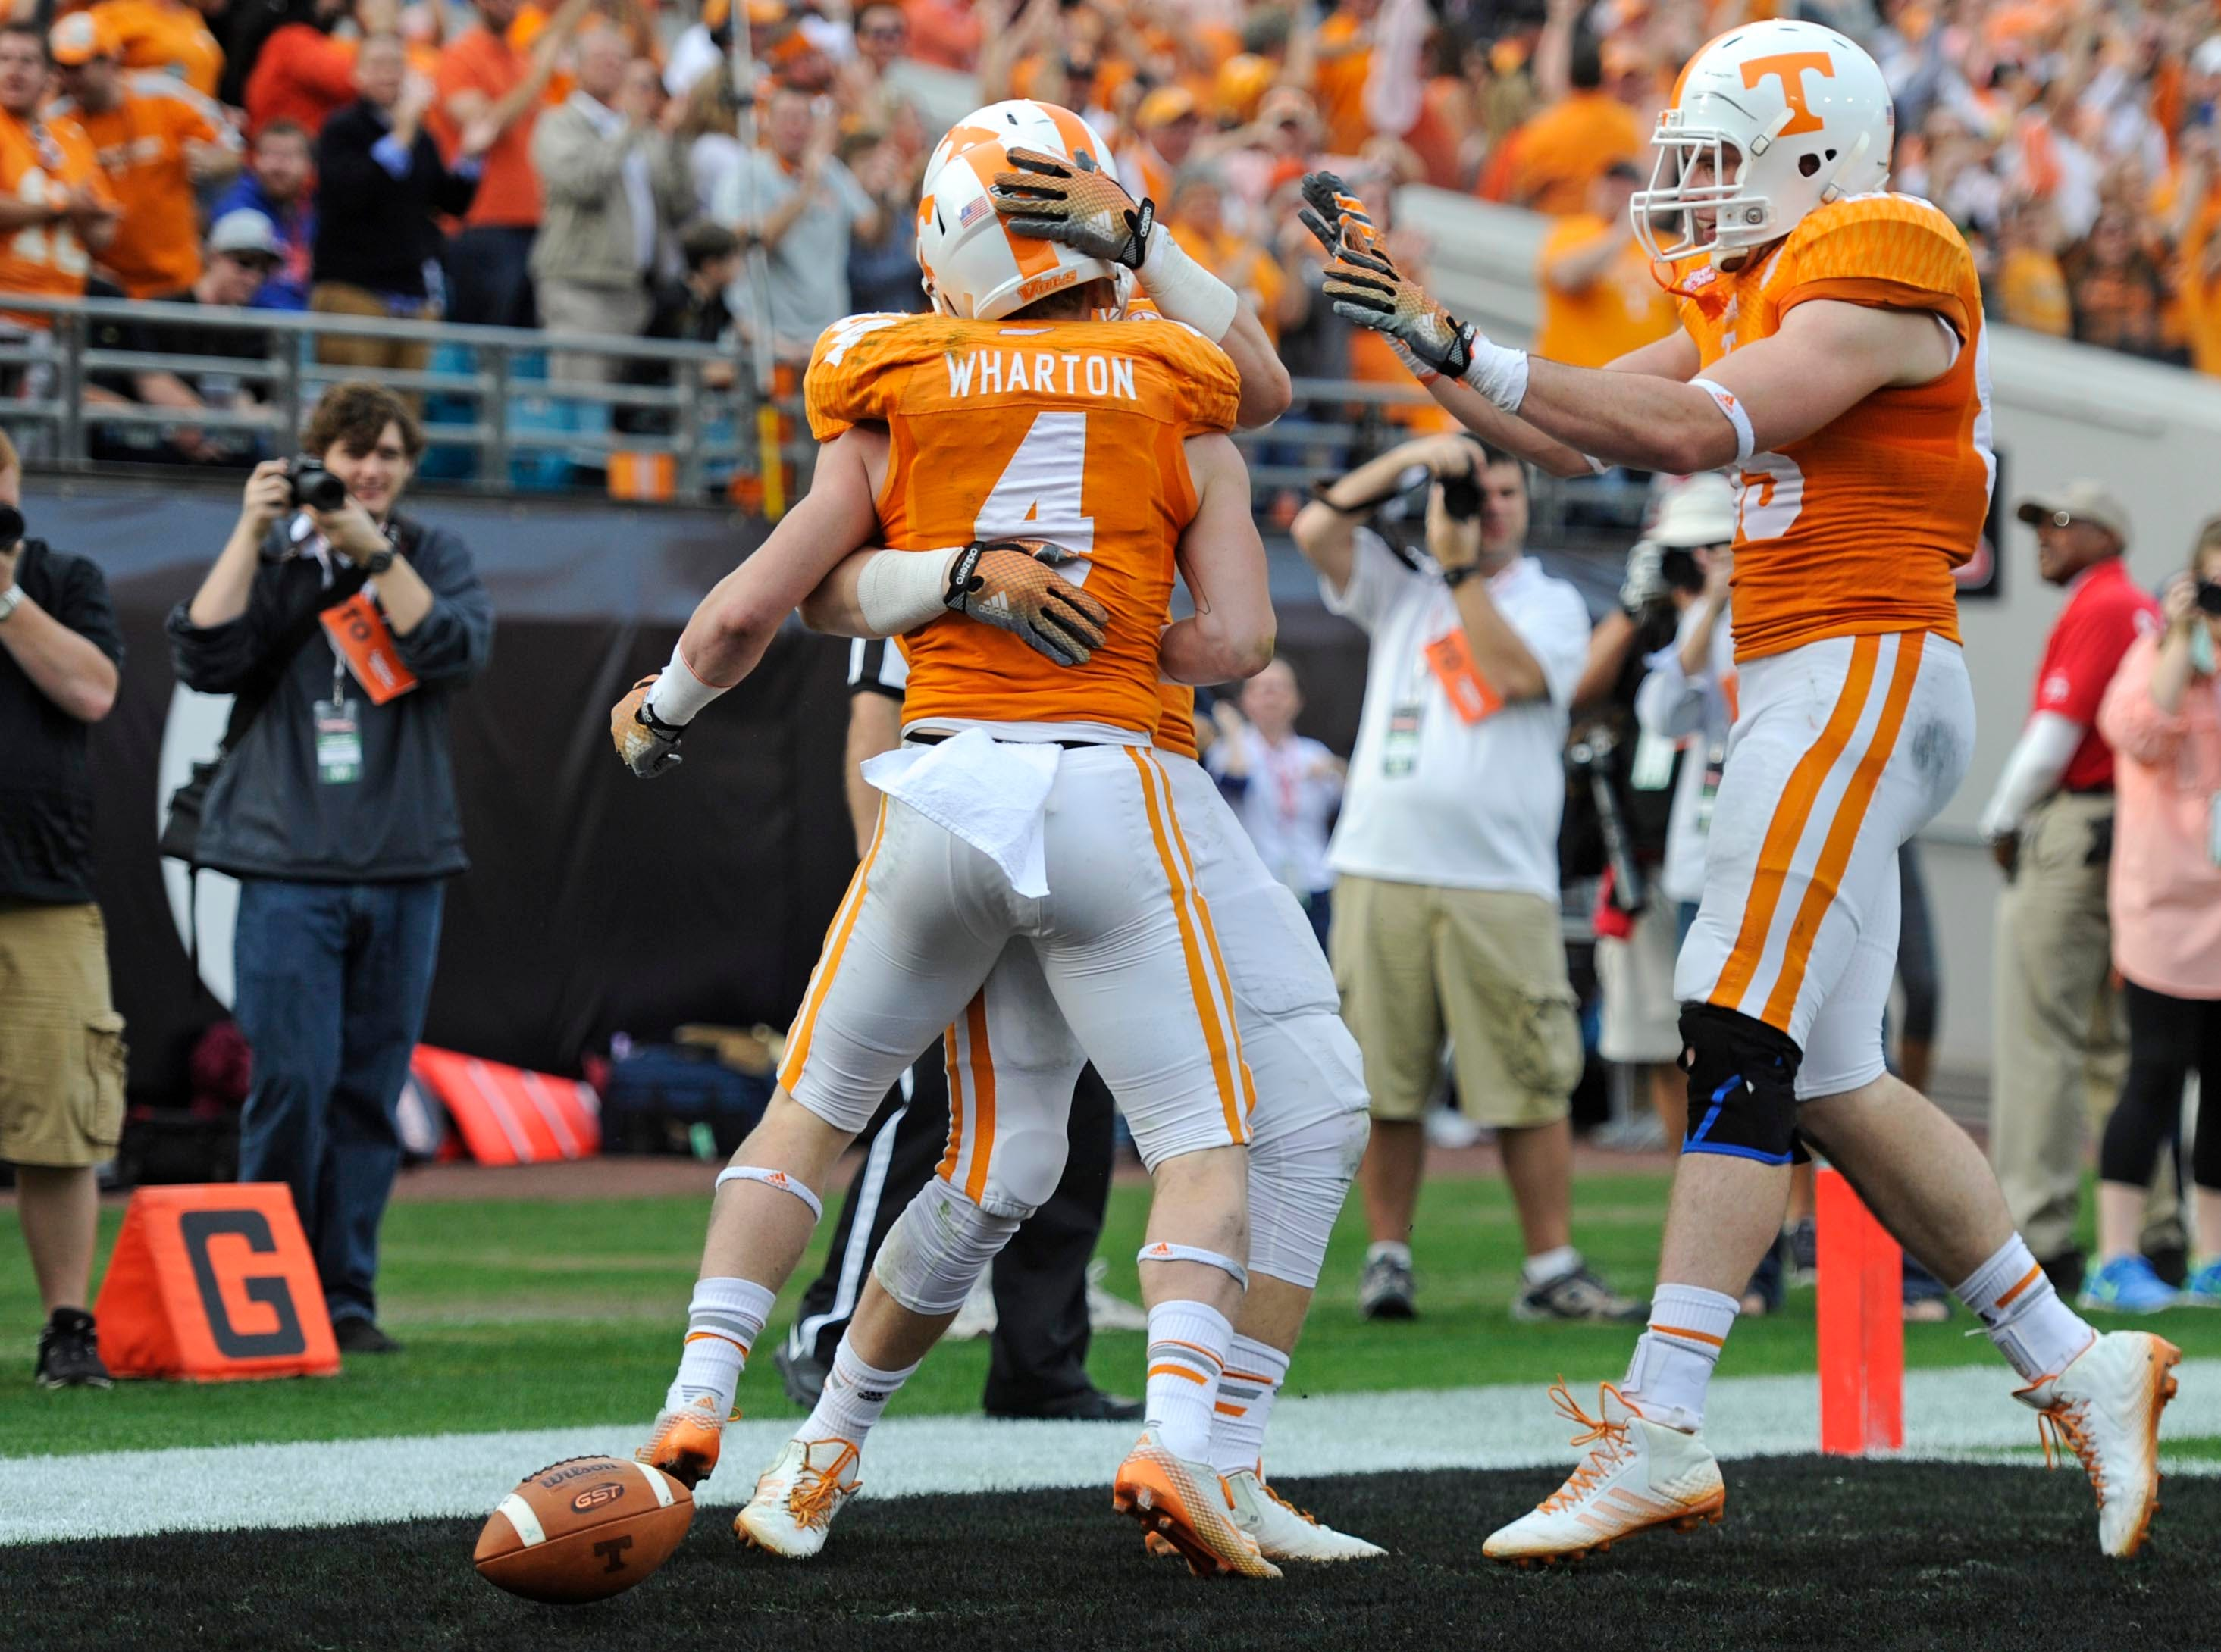 Tennessee wide receiver Vic Wharton (4) celebrates after scoring a touchdown against Iowa during the first half of the Taxslayer Bowl at EverBank Field on Friday, Jan. 2, 2015 in Jacksonville, Fla.